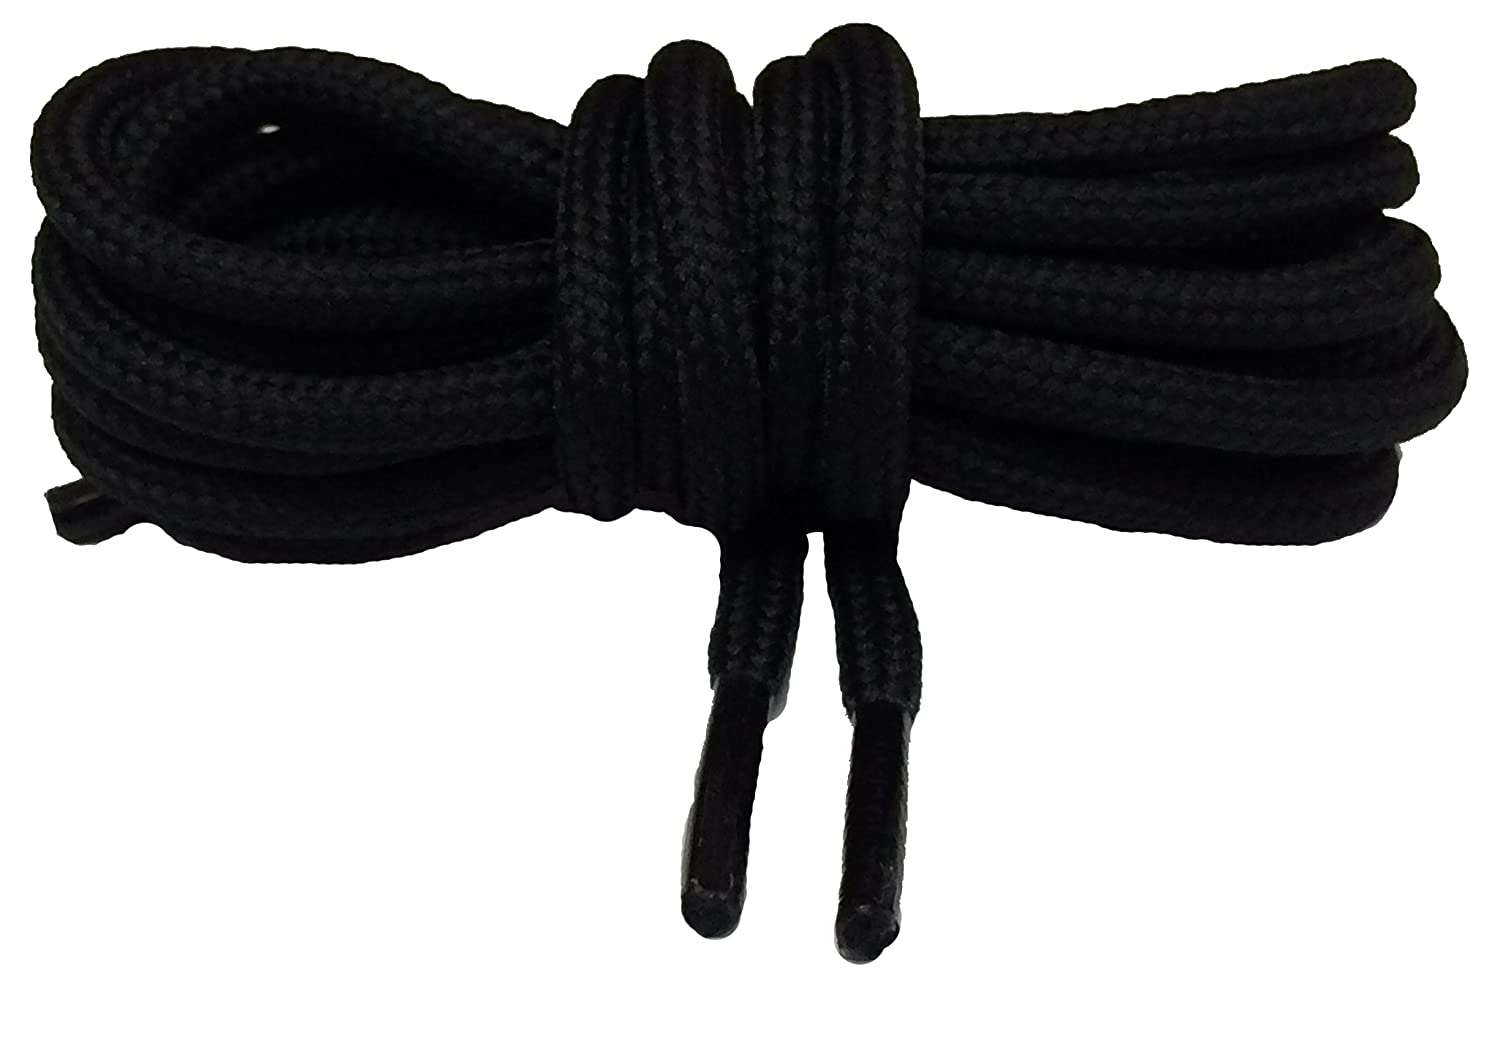 c3737c667889 Big Laces Round Shoelaces - Huge choice of Lengths and Colours   Amazon.co.uk  Shoes   Bags